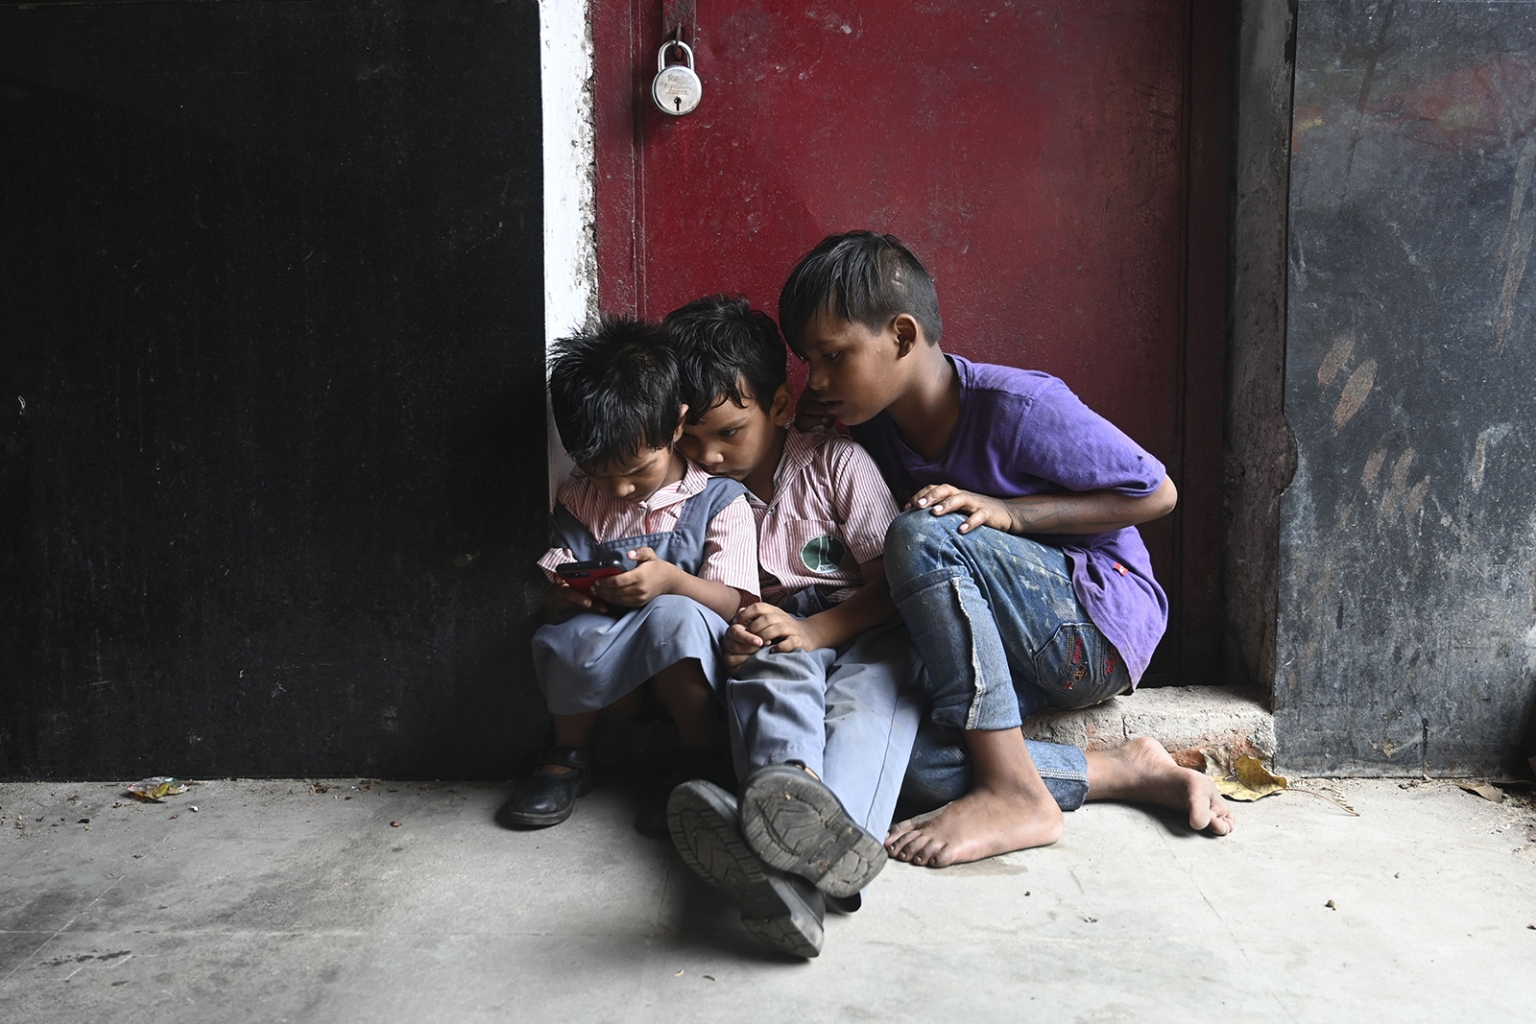 Children play on a cell phone at a market in New Delhi on Sept. 23. SAJJAD HUSSAIN/AFP/Getty Images